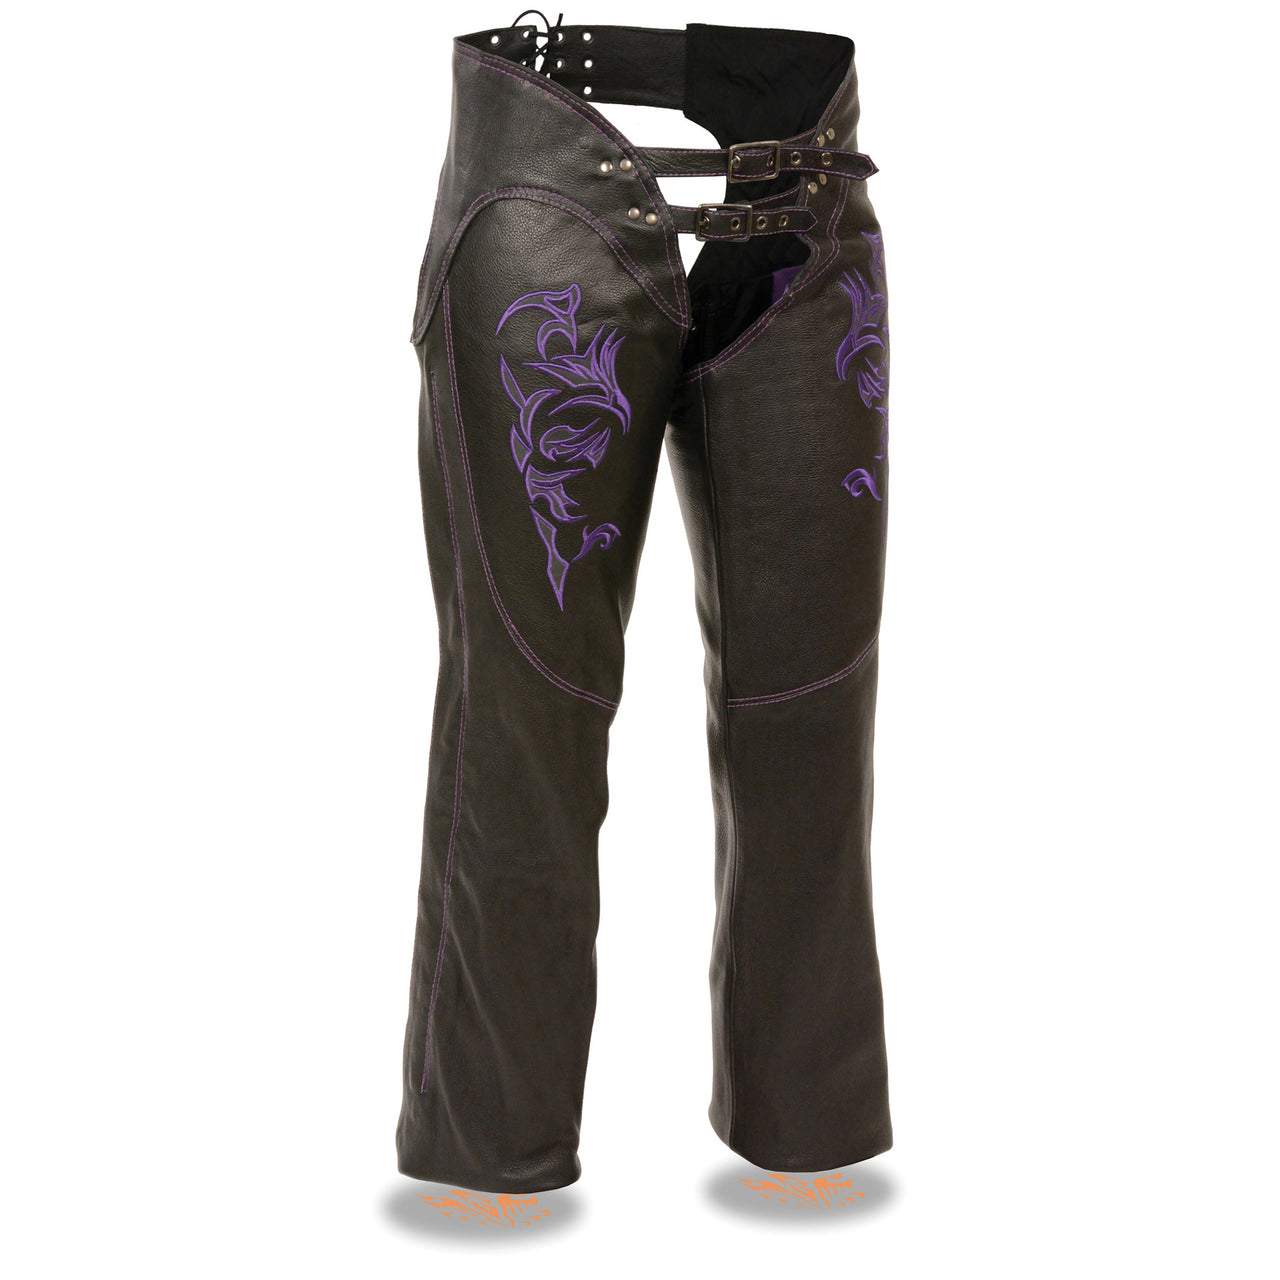 Ladies Chap w/ Reflective Tribal Embroidery - highwayleather